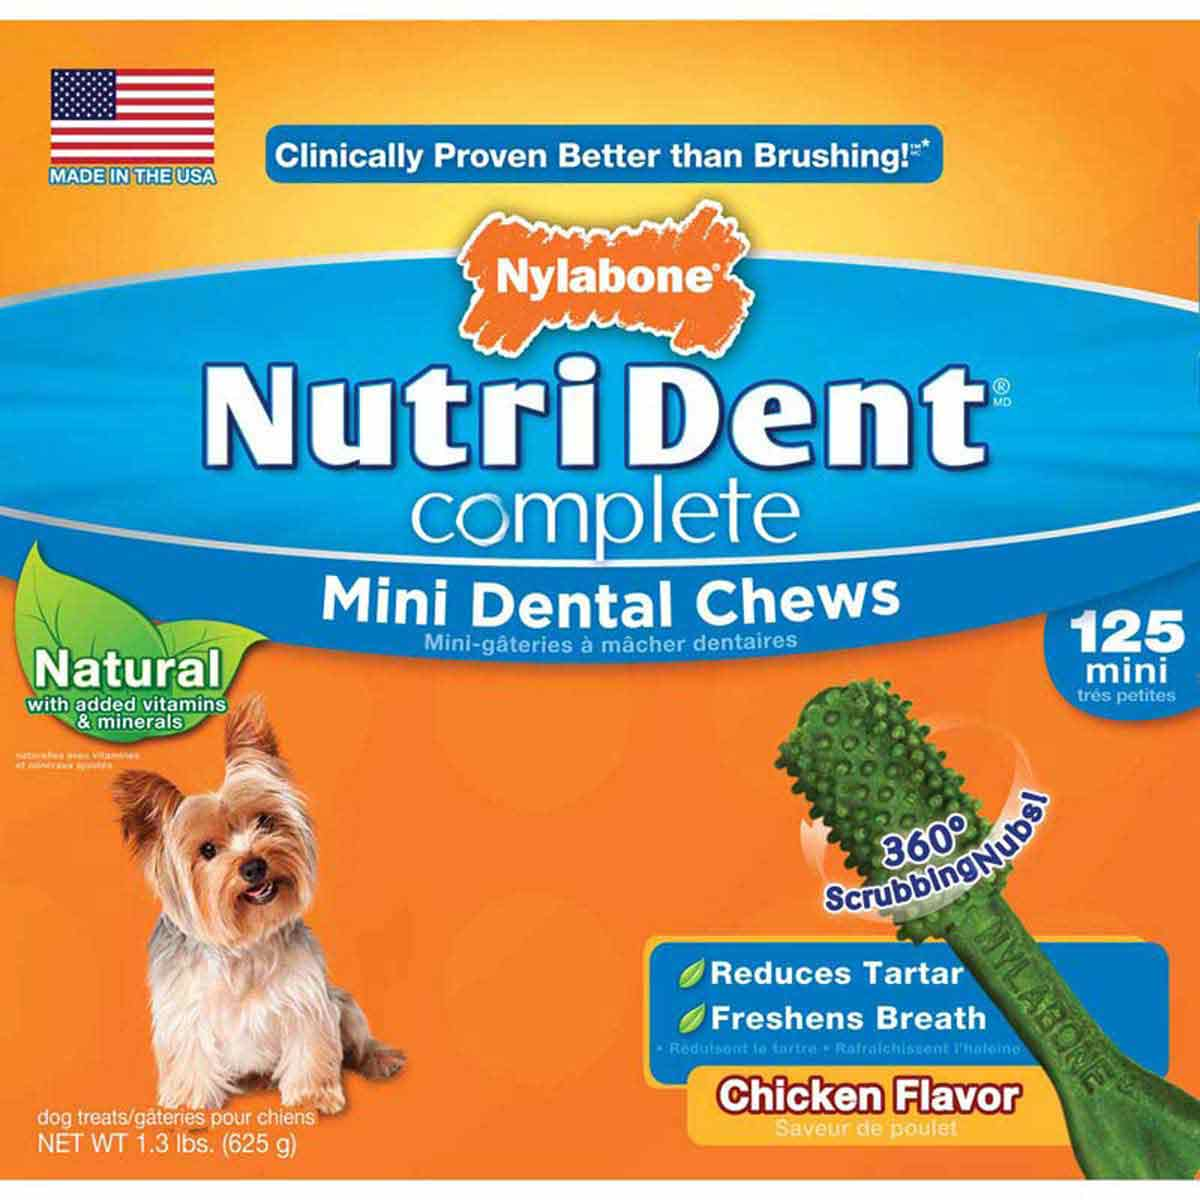 Nylabone Nutri Dent Complete Adult Chicken Flavored Dental Chews Mini 125 Count